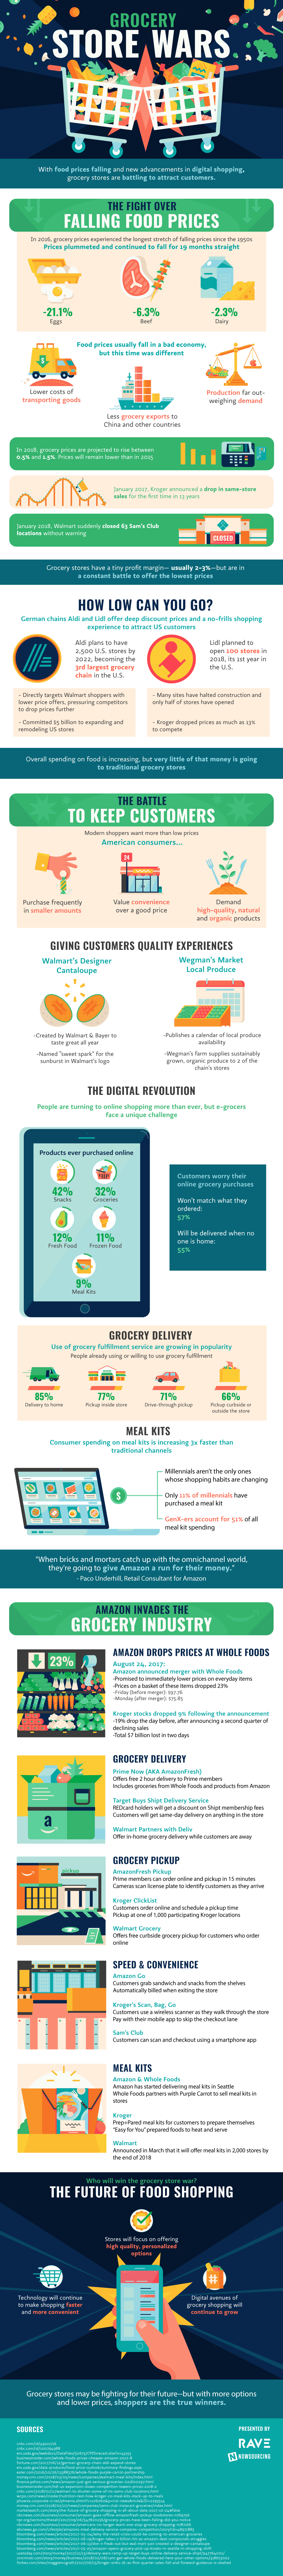 Hacking the Grocery Store Wars With Tech - By